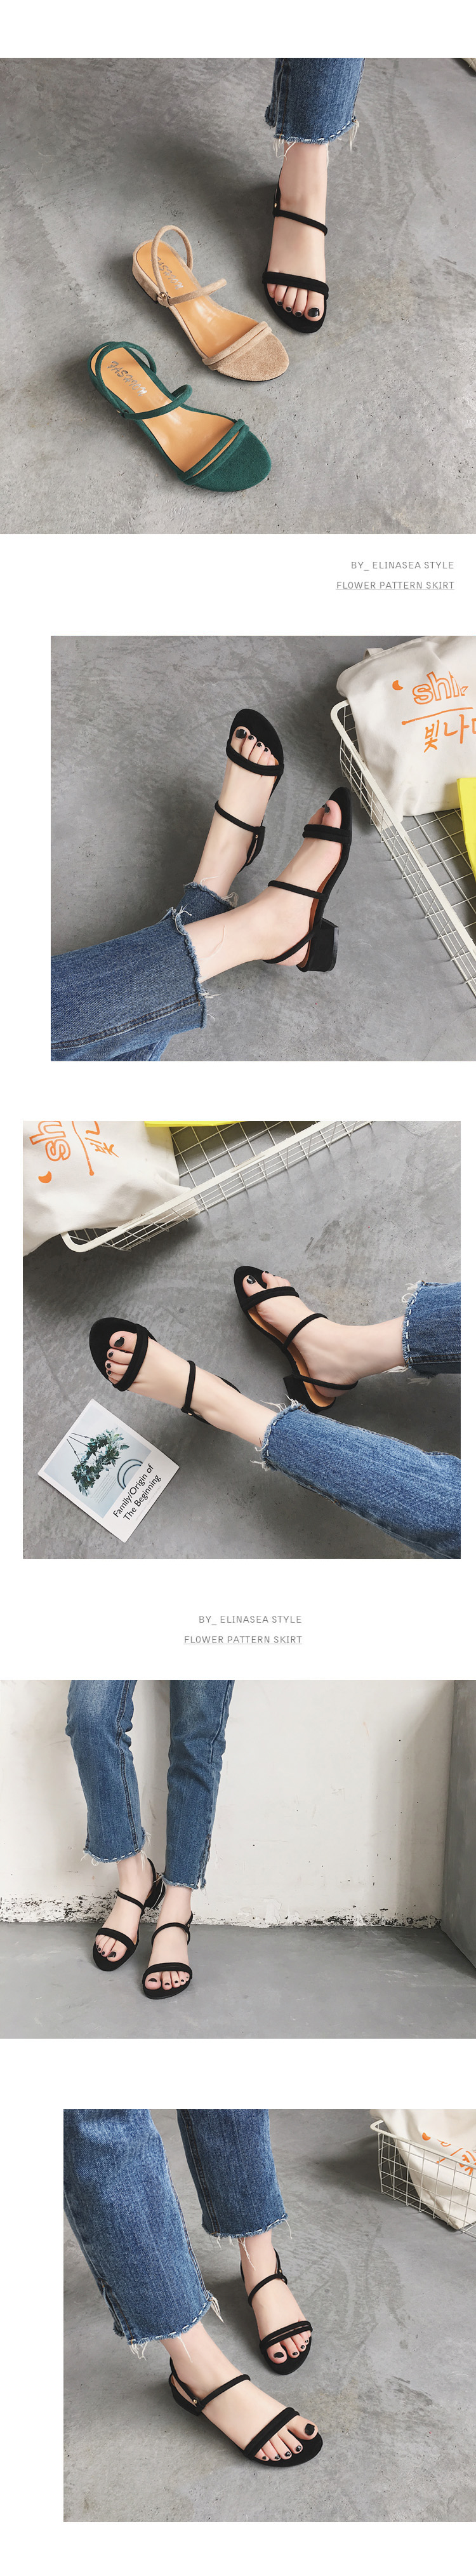 HTB1F0g OpYqK1RjSZLeq6zXppXa3 new Flat outdoor slippers Sandals foot ring straps Roman sandals low slope with women's shoes low heel shoes Sandals mujer